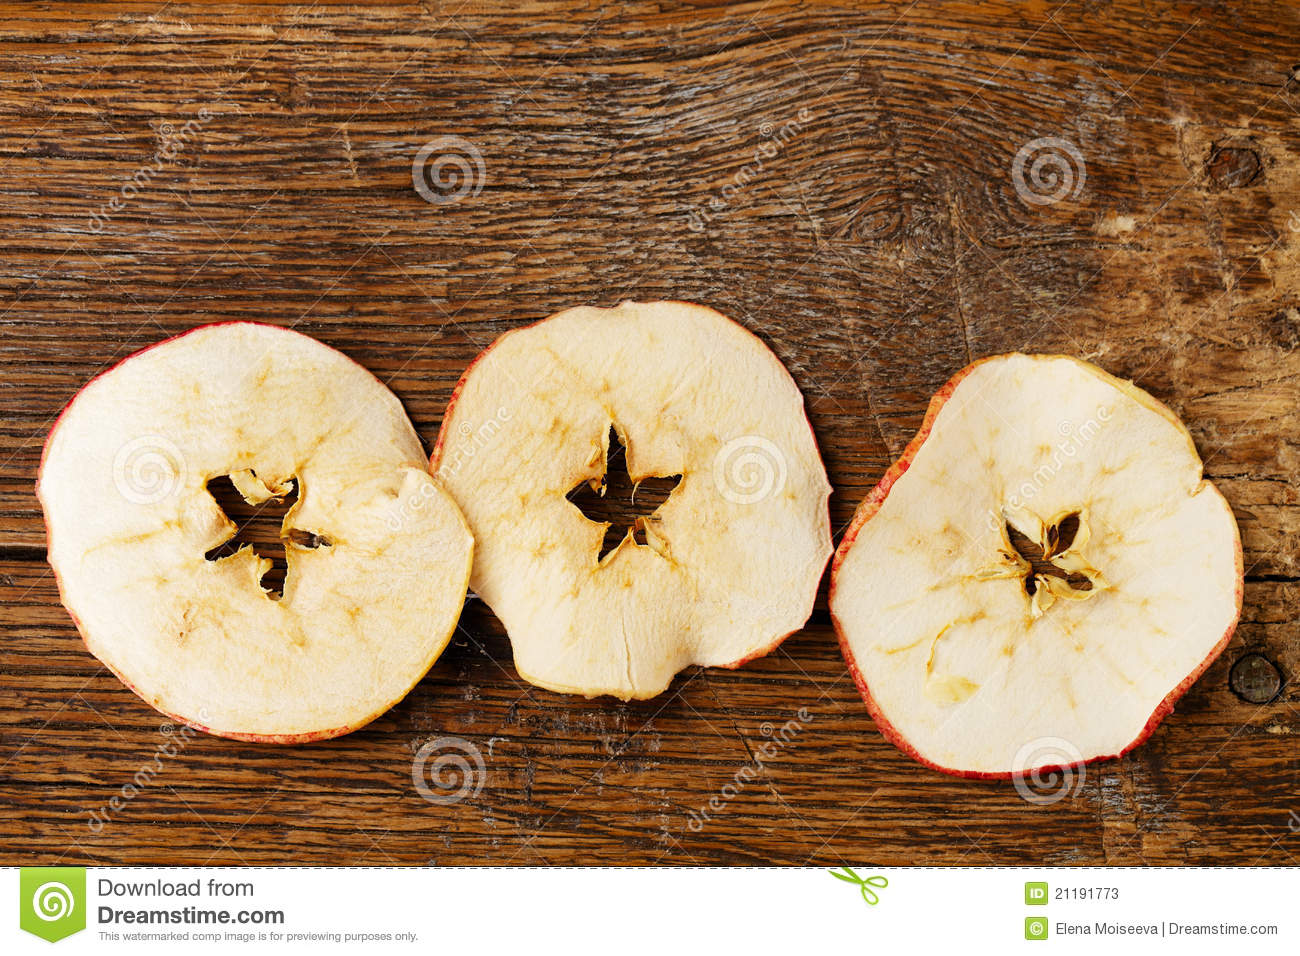 Three dried apples slices on old wooden table